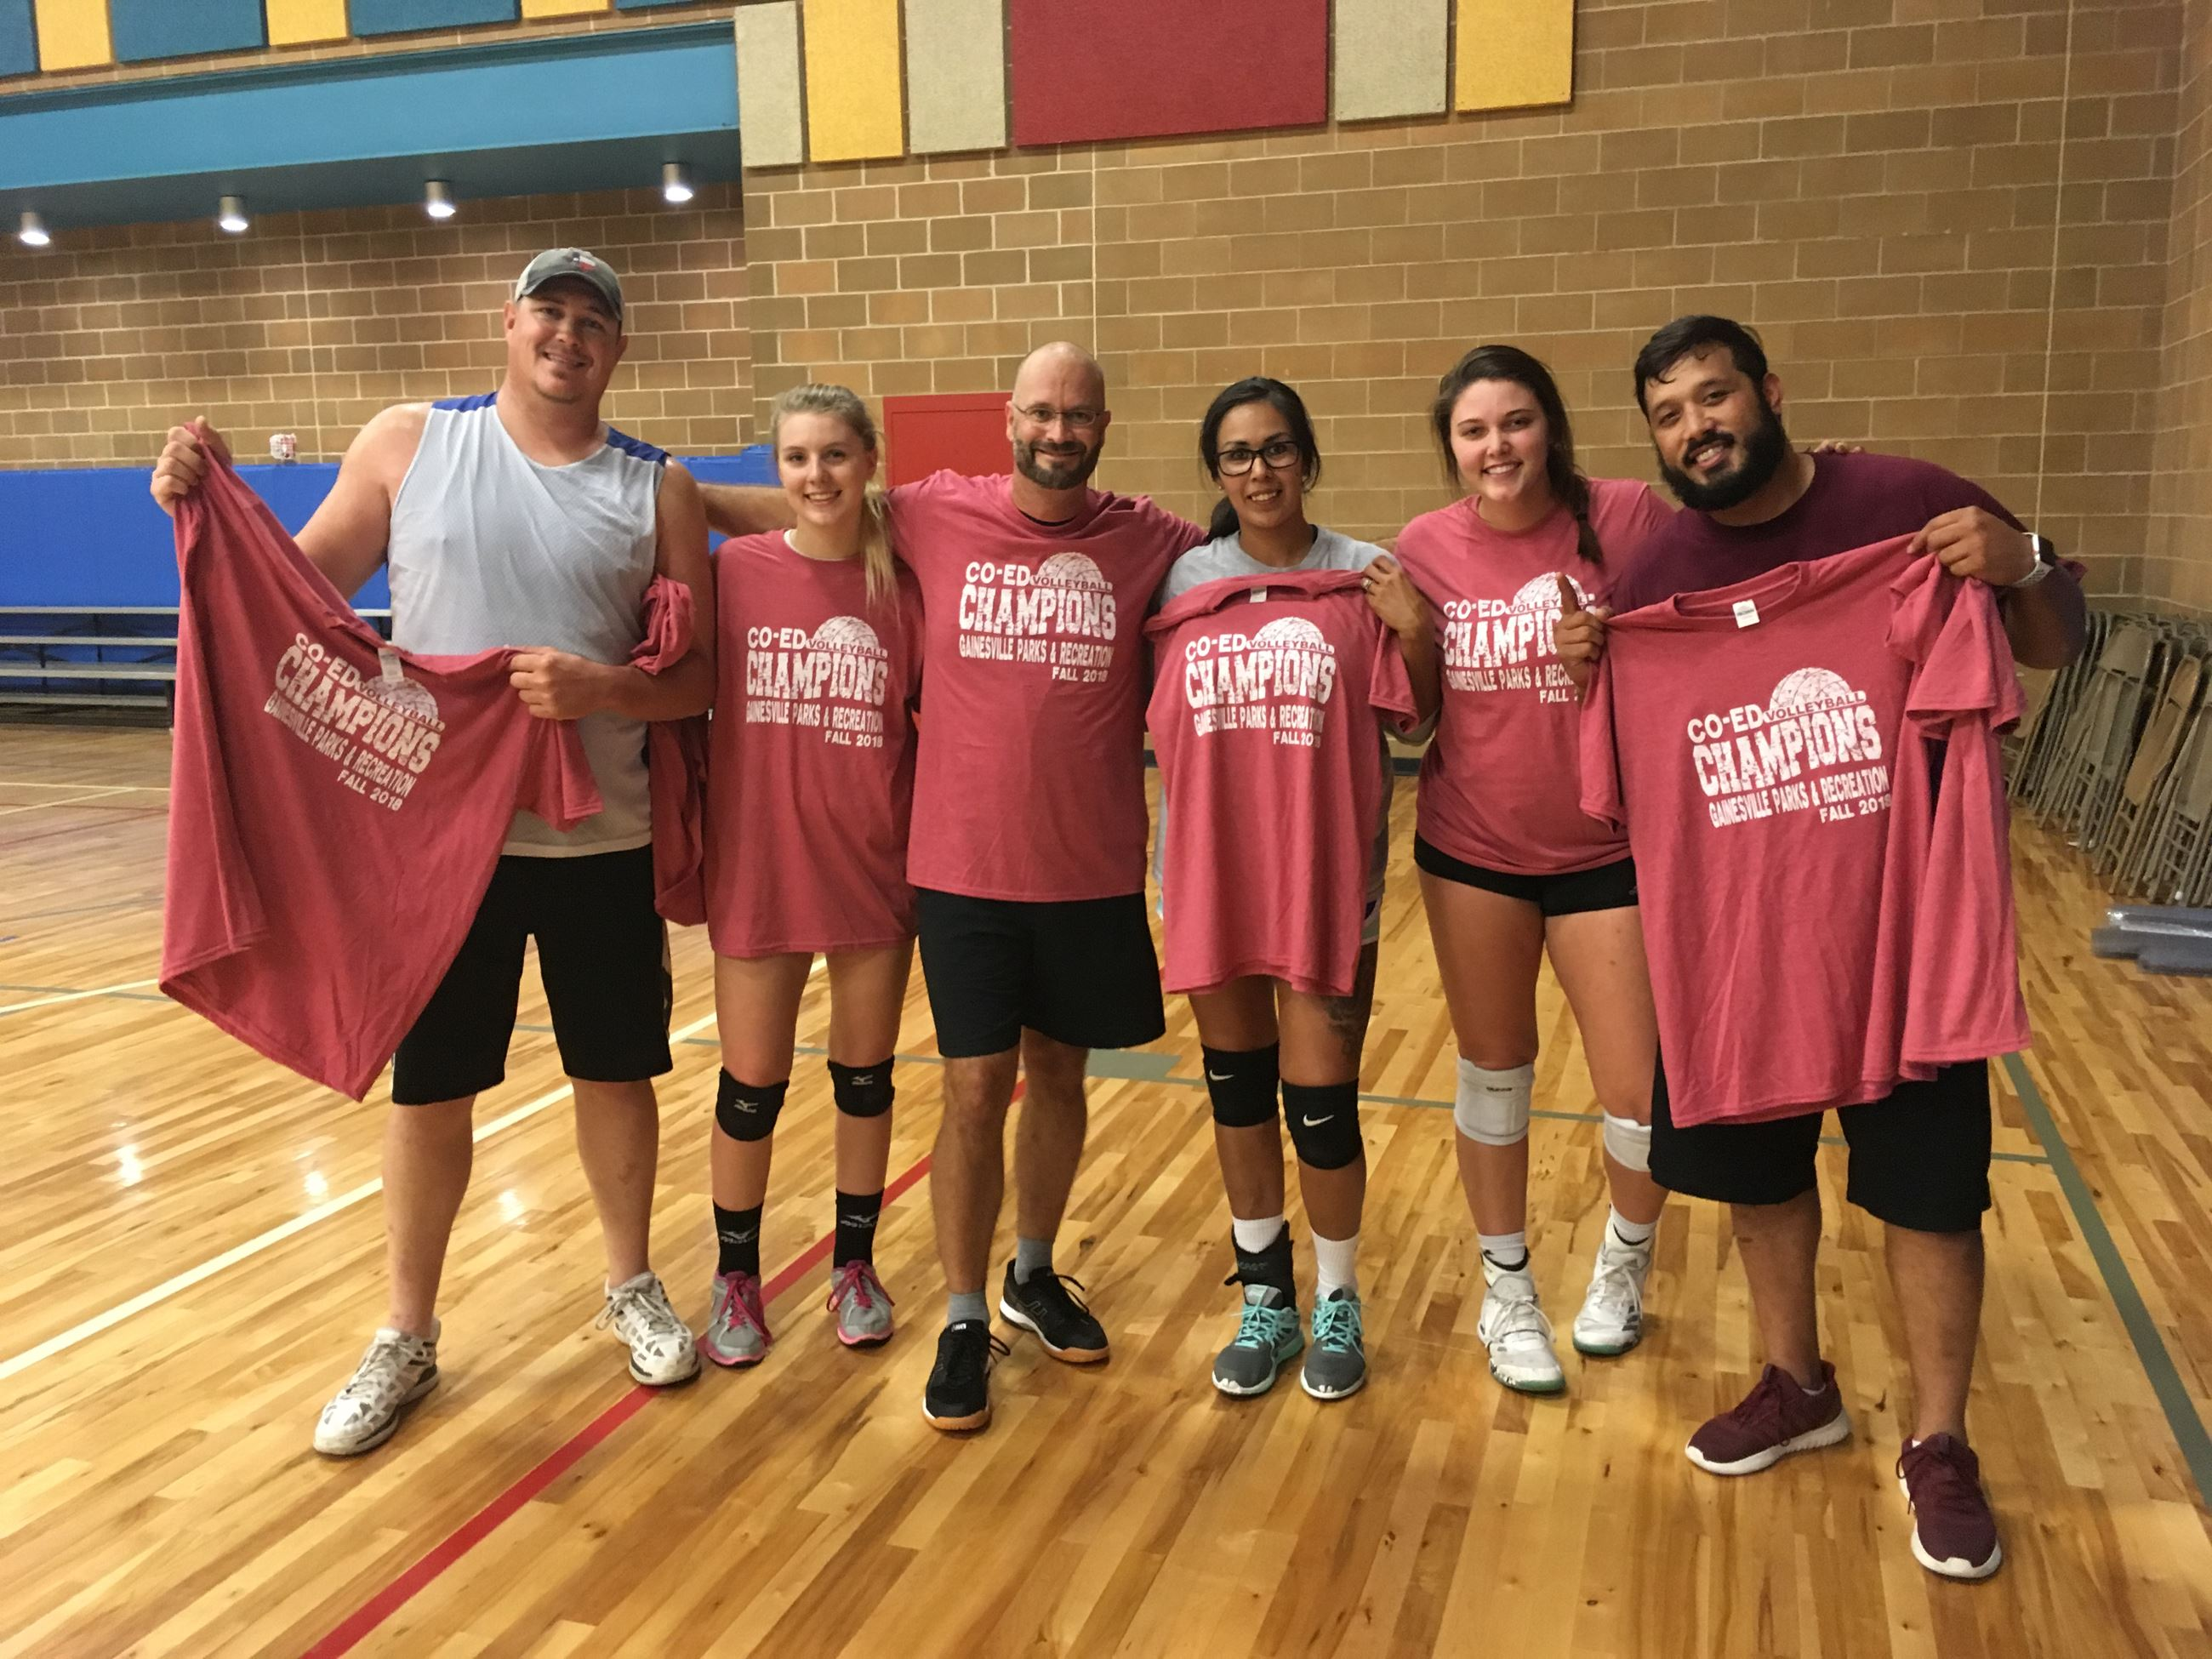 2018 Fall Volleyball Champs